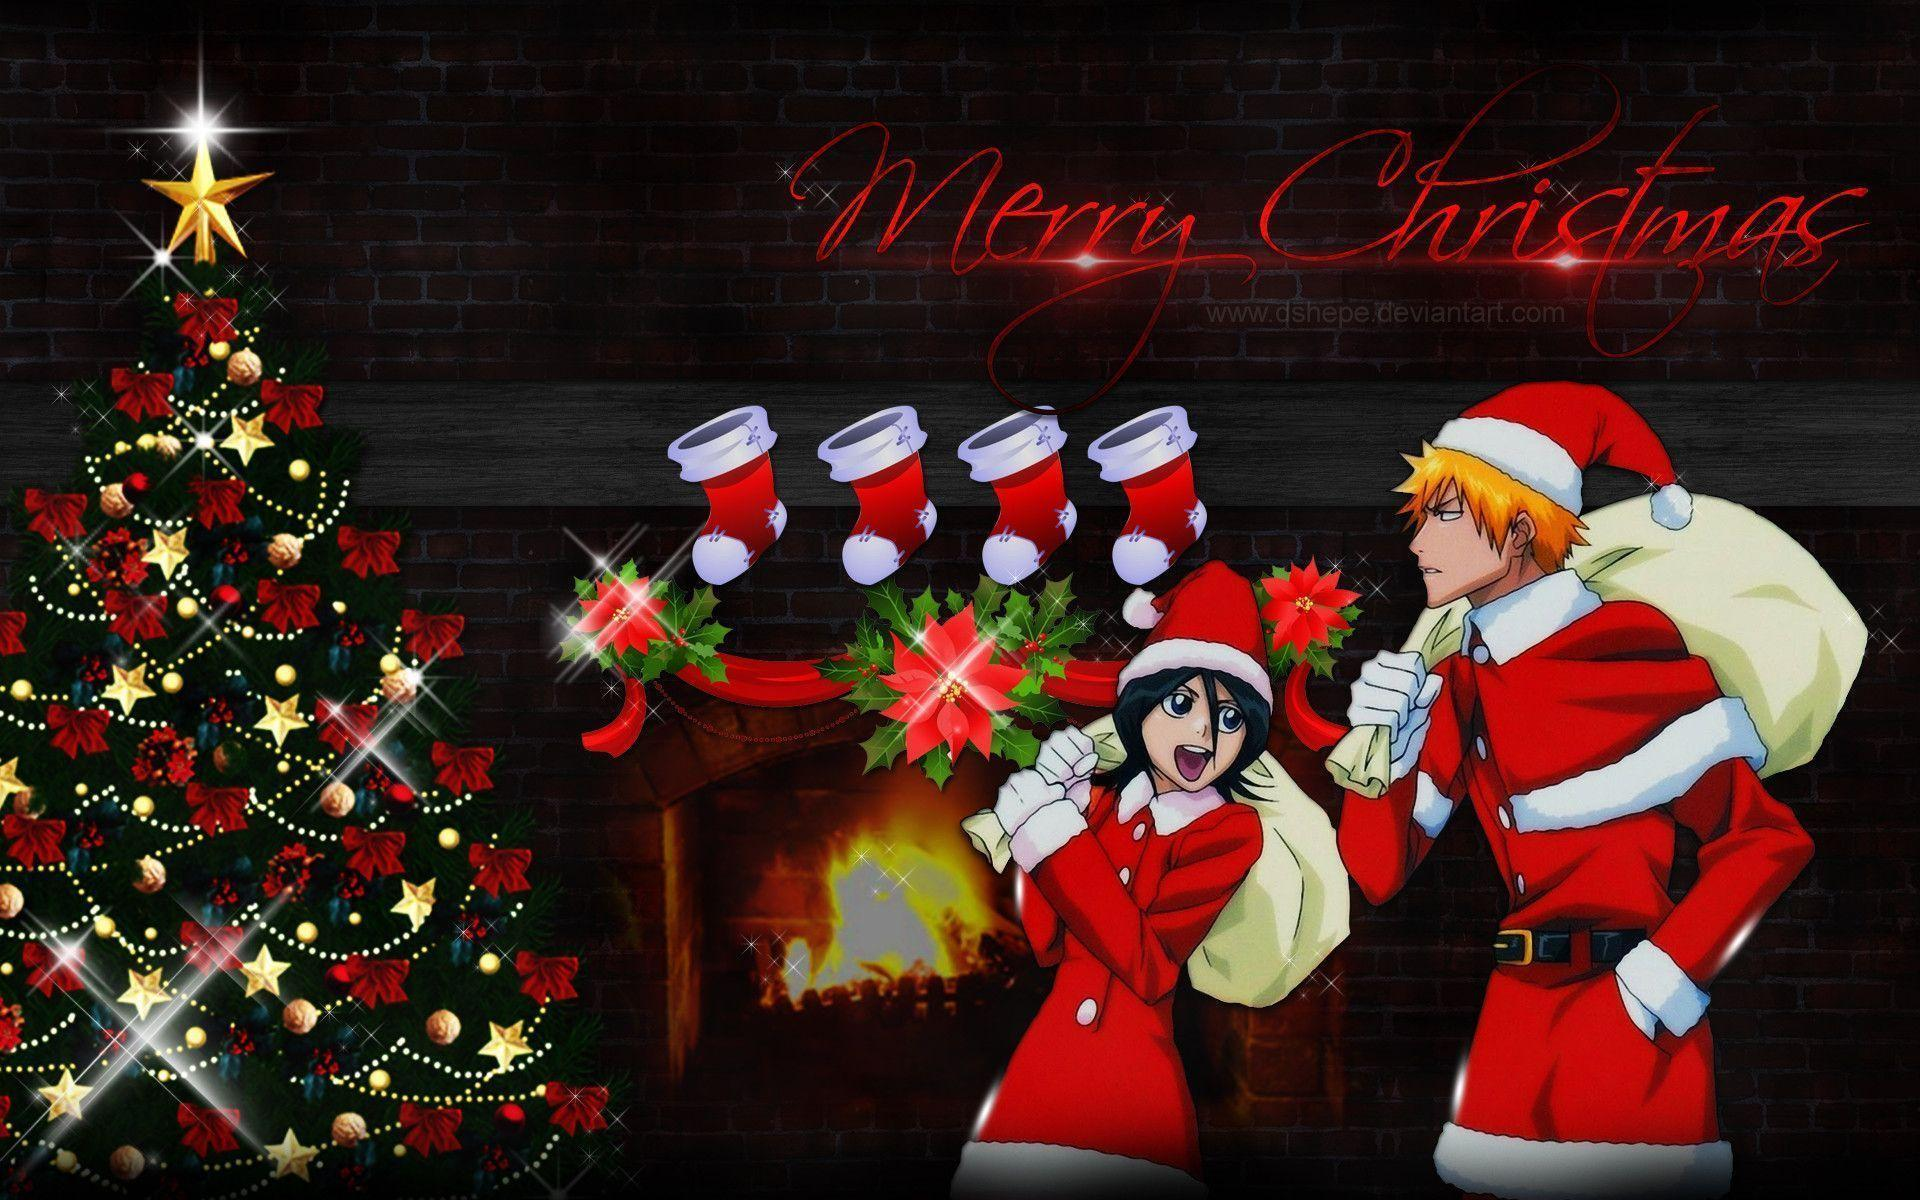 Naruto christmas wallpapers wallpaper cave - Anime merry christmas wallpaper ...